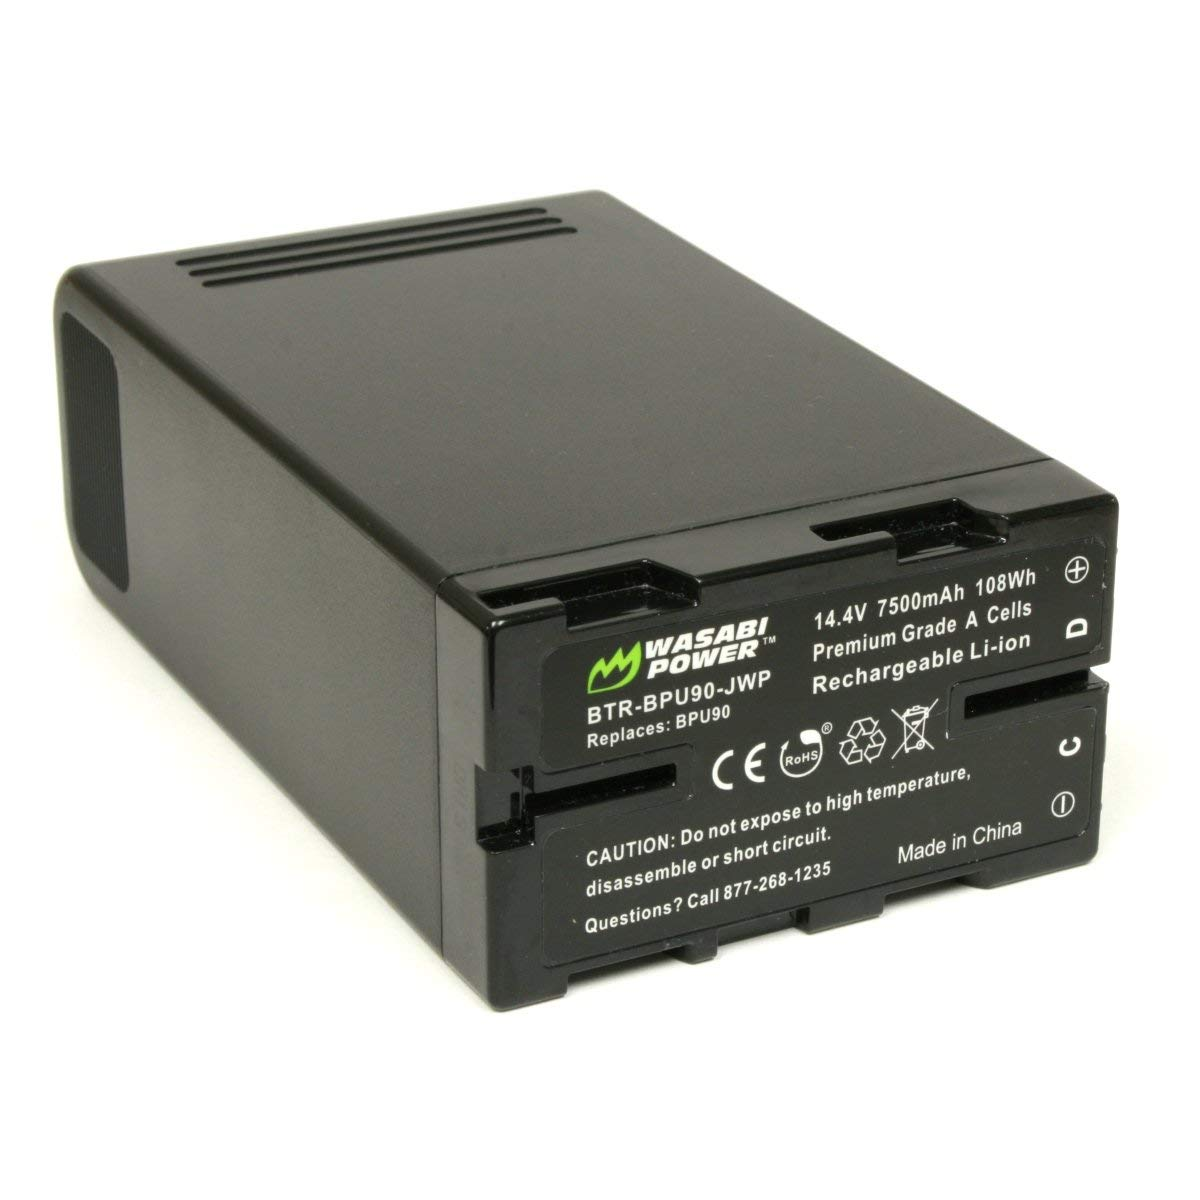 Wasabi Power Battery for Sony BP-U90 (14.4V, 7500mAh, 108Wh)